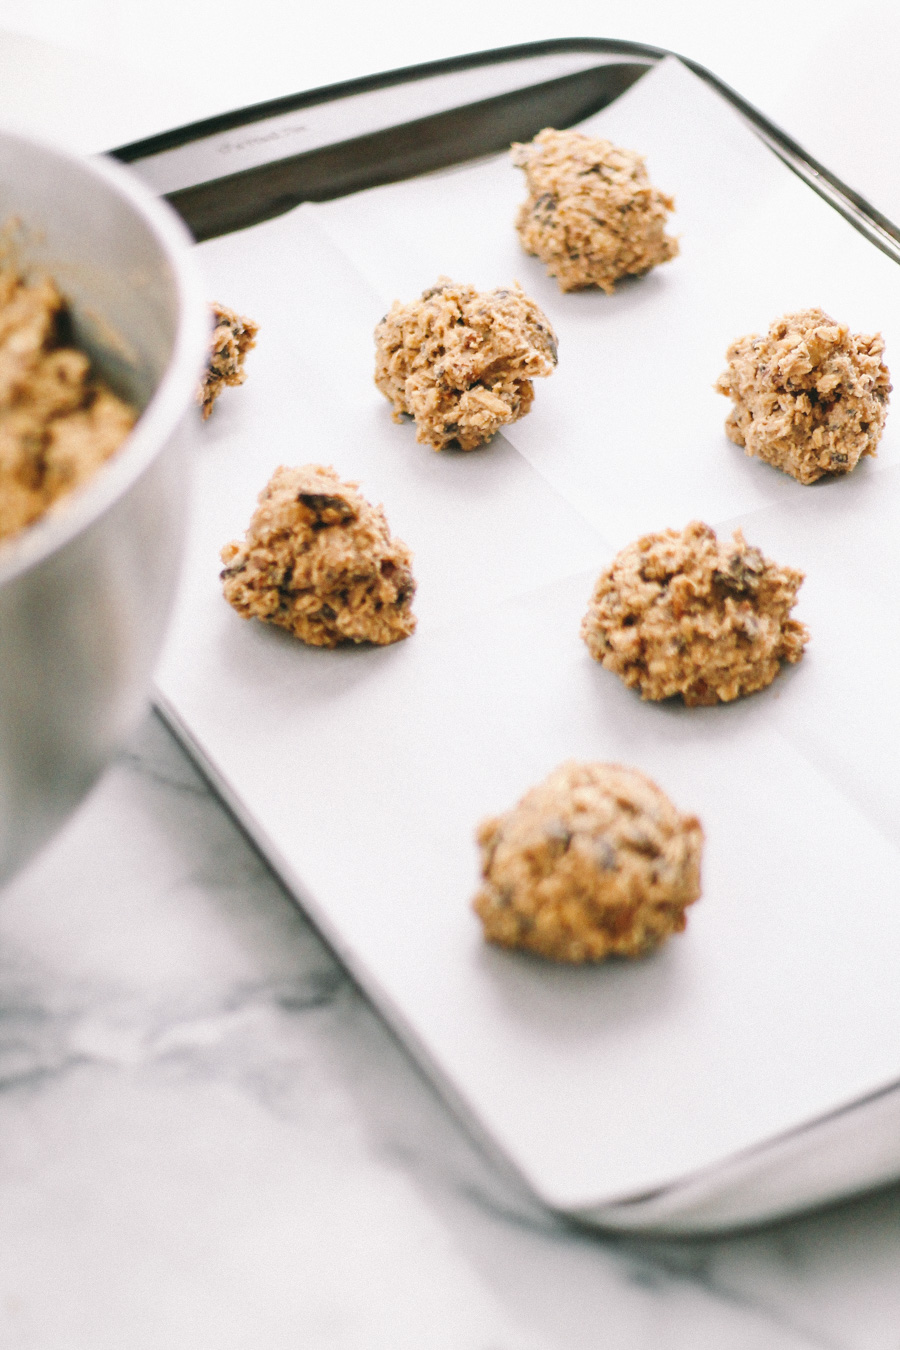 dark chocolate chunk oatmeal cookies with walnuts, pecans, & sea salt via playswellwithbutter | not your average chocolate chip cookie, dark chocolate chunk oatmeal cookies have the perfect crunchy yet chewy texture & are loaded with rich chunks of dark chocolate, walnuts, & pecans. finished with just a kiss of sea salt, these perfect cookies will have you coming back for more!